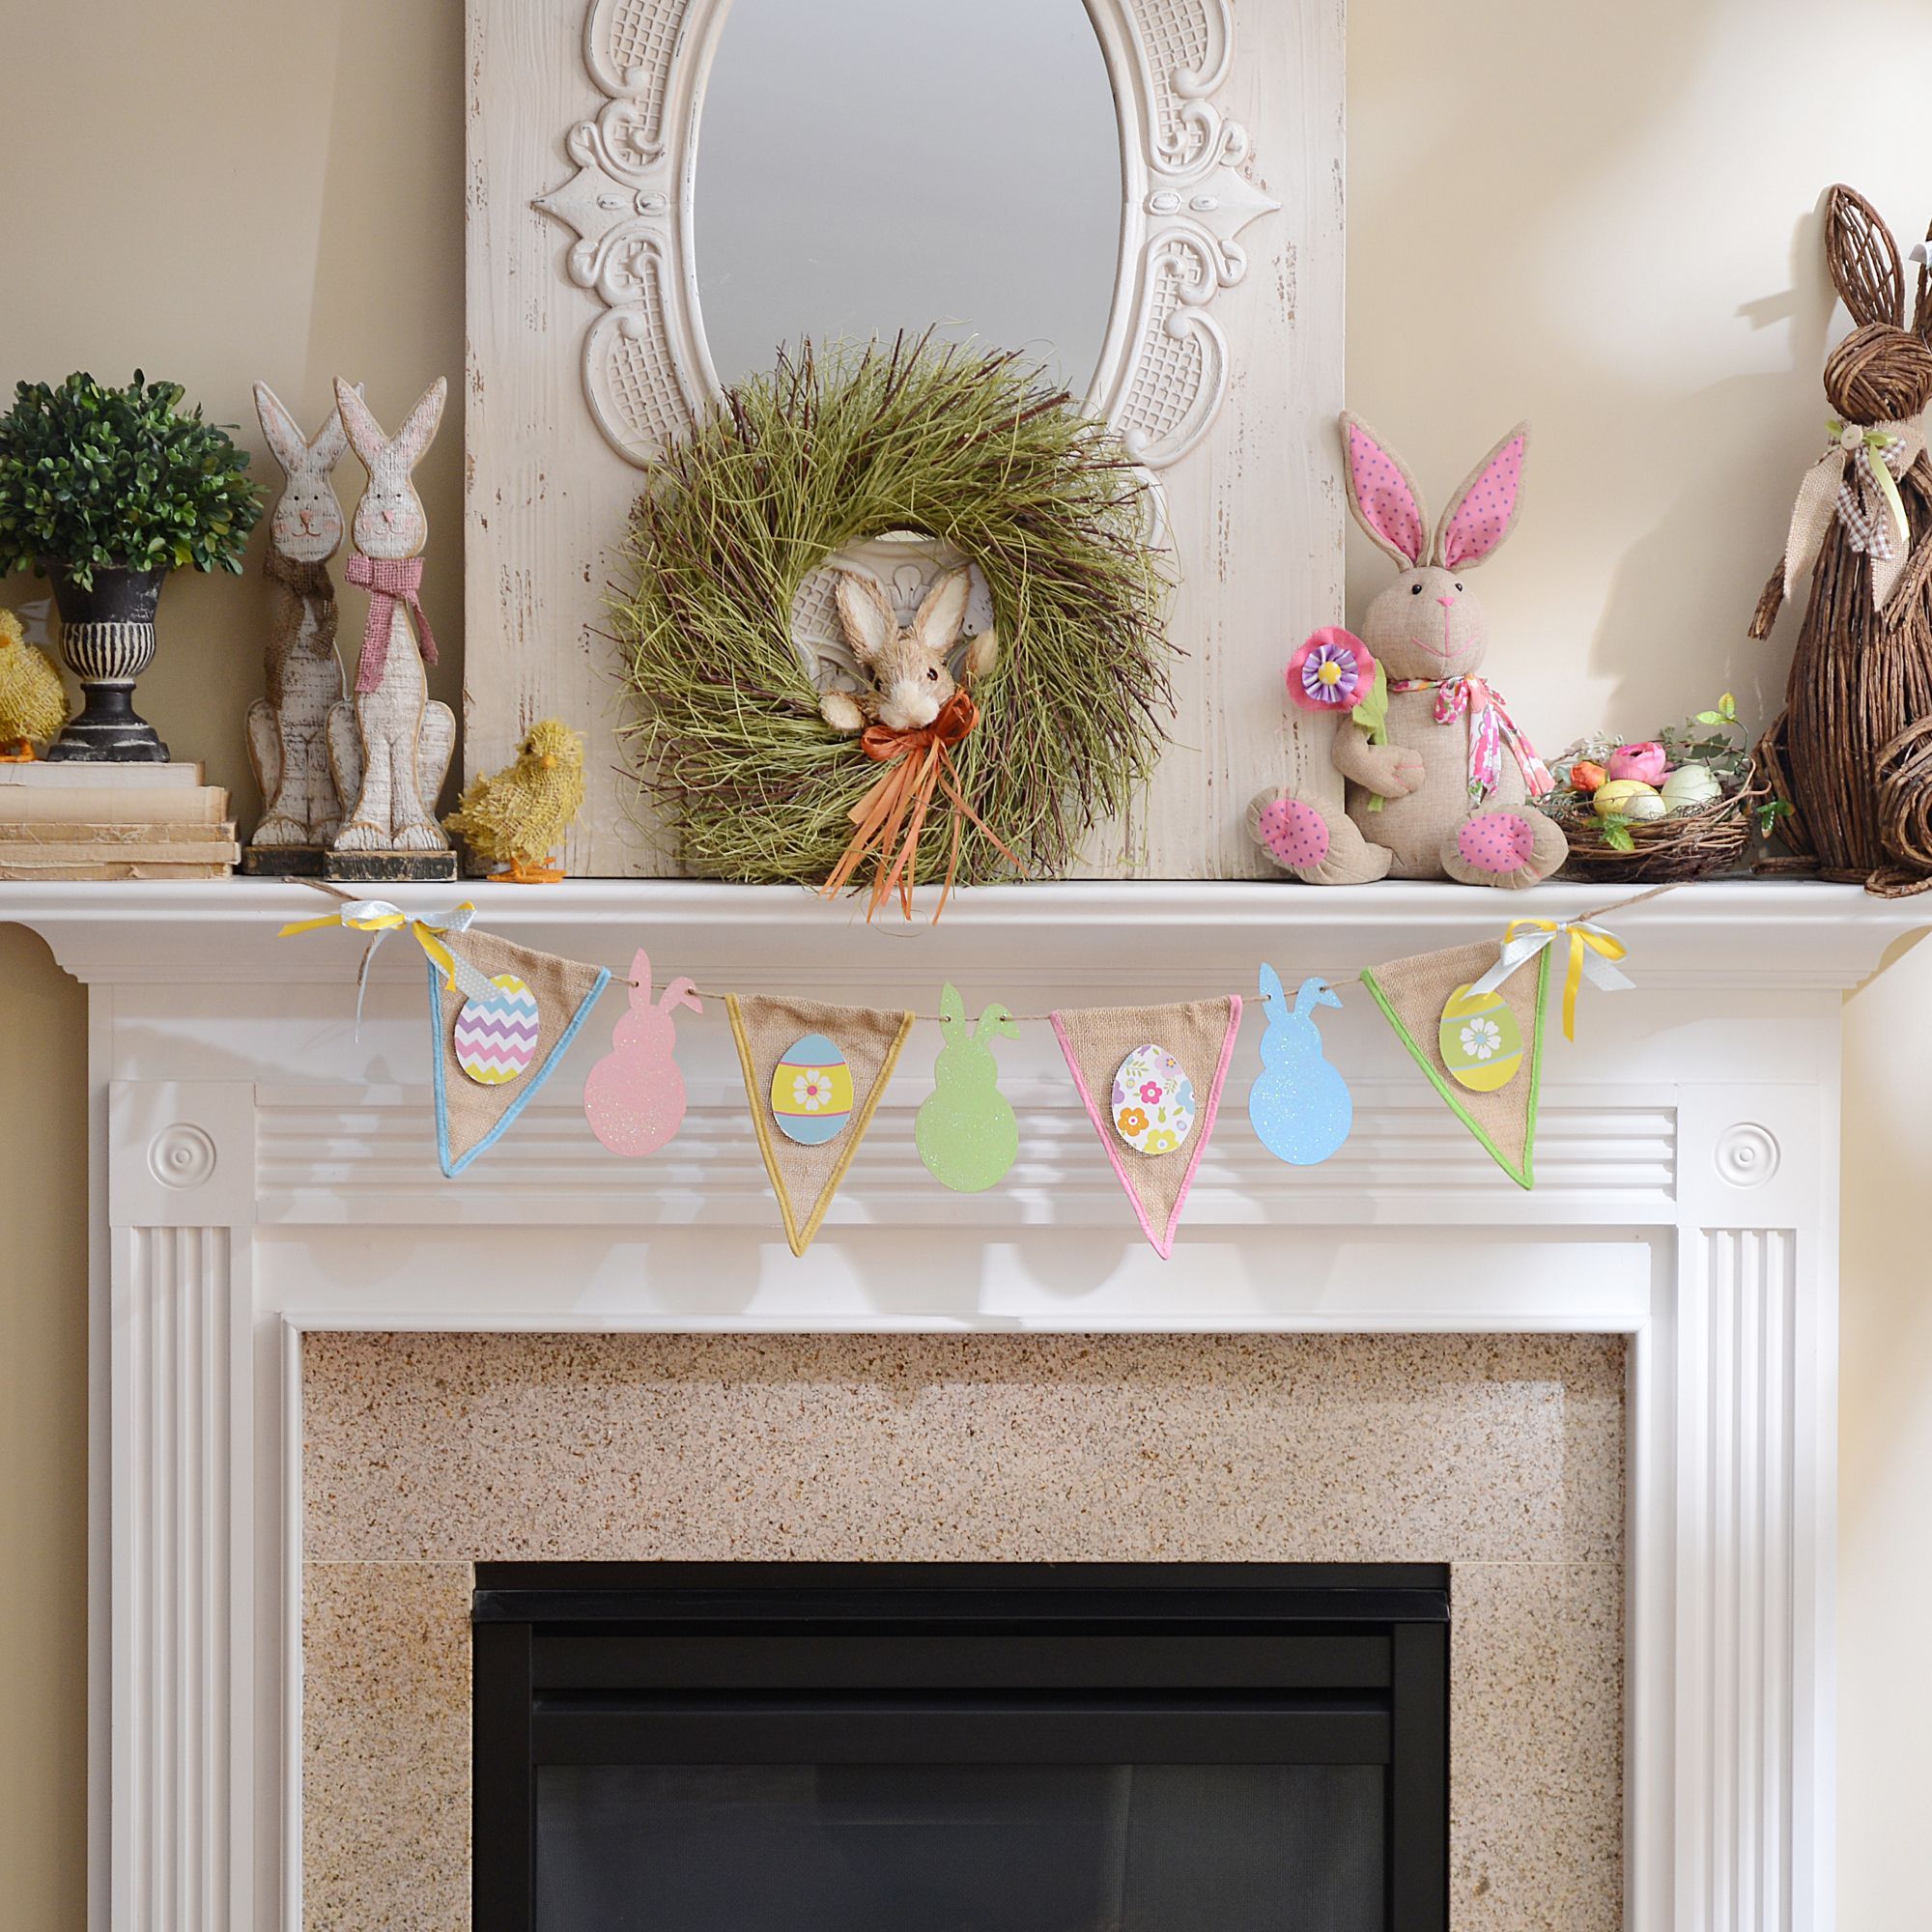 Decorate your entire mantlepiece with the joy of Easter! Add our Glittered Easter Bunny Burlap Pennant Banner to your home decor for a dash of homespun charm and a touch of sparkle!